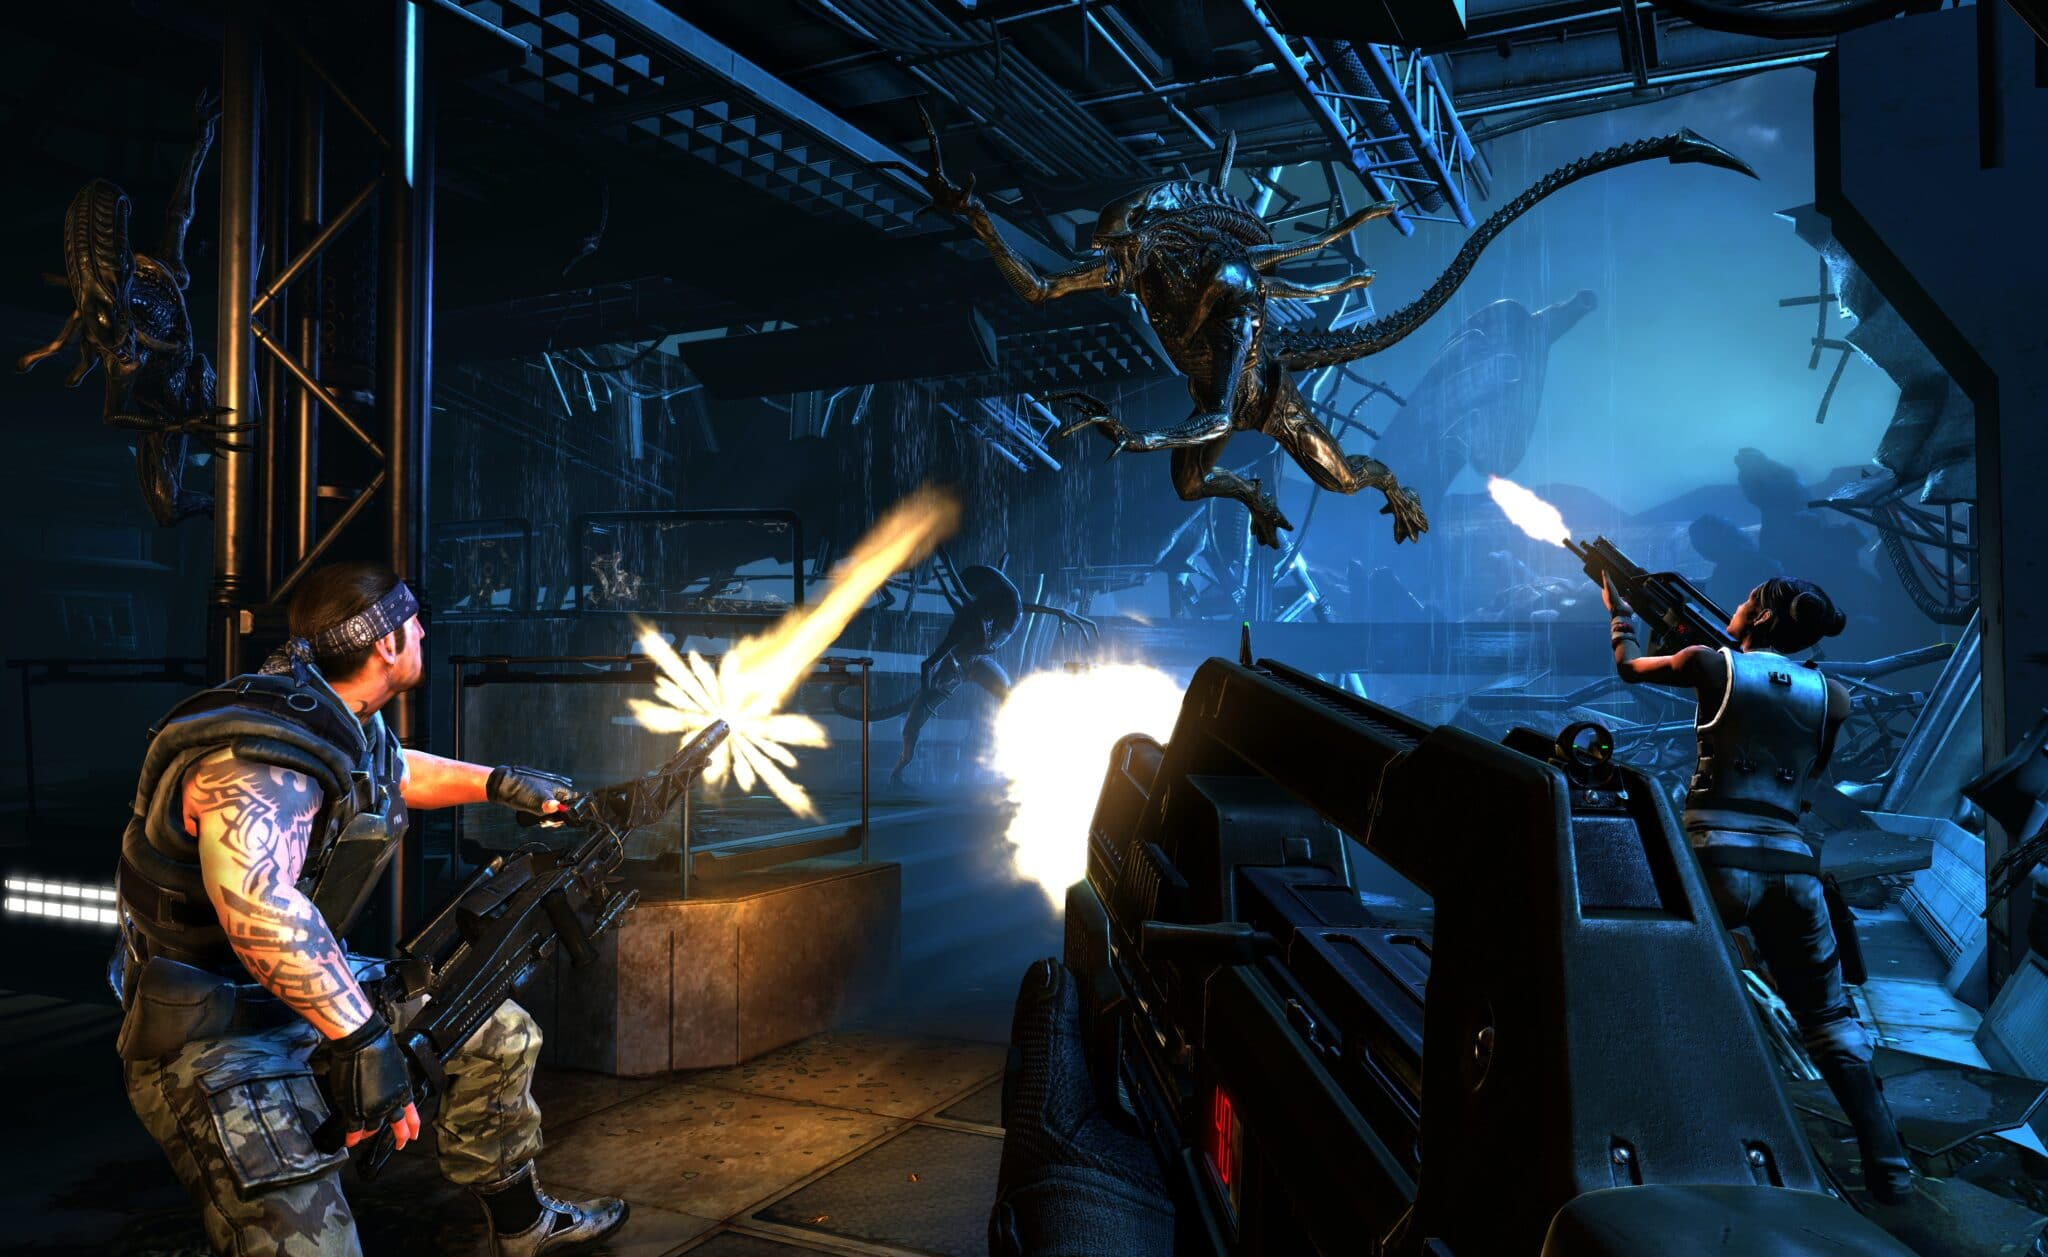 Disappointment - Aliens: Colonial Marines